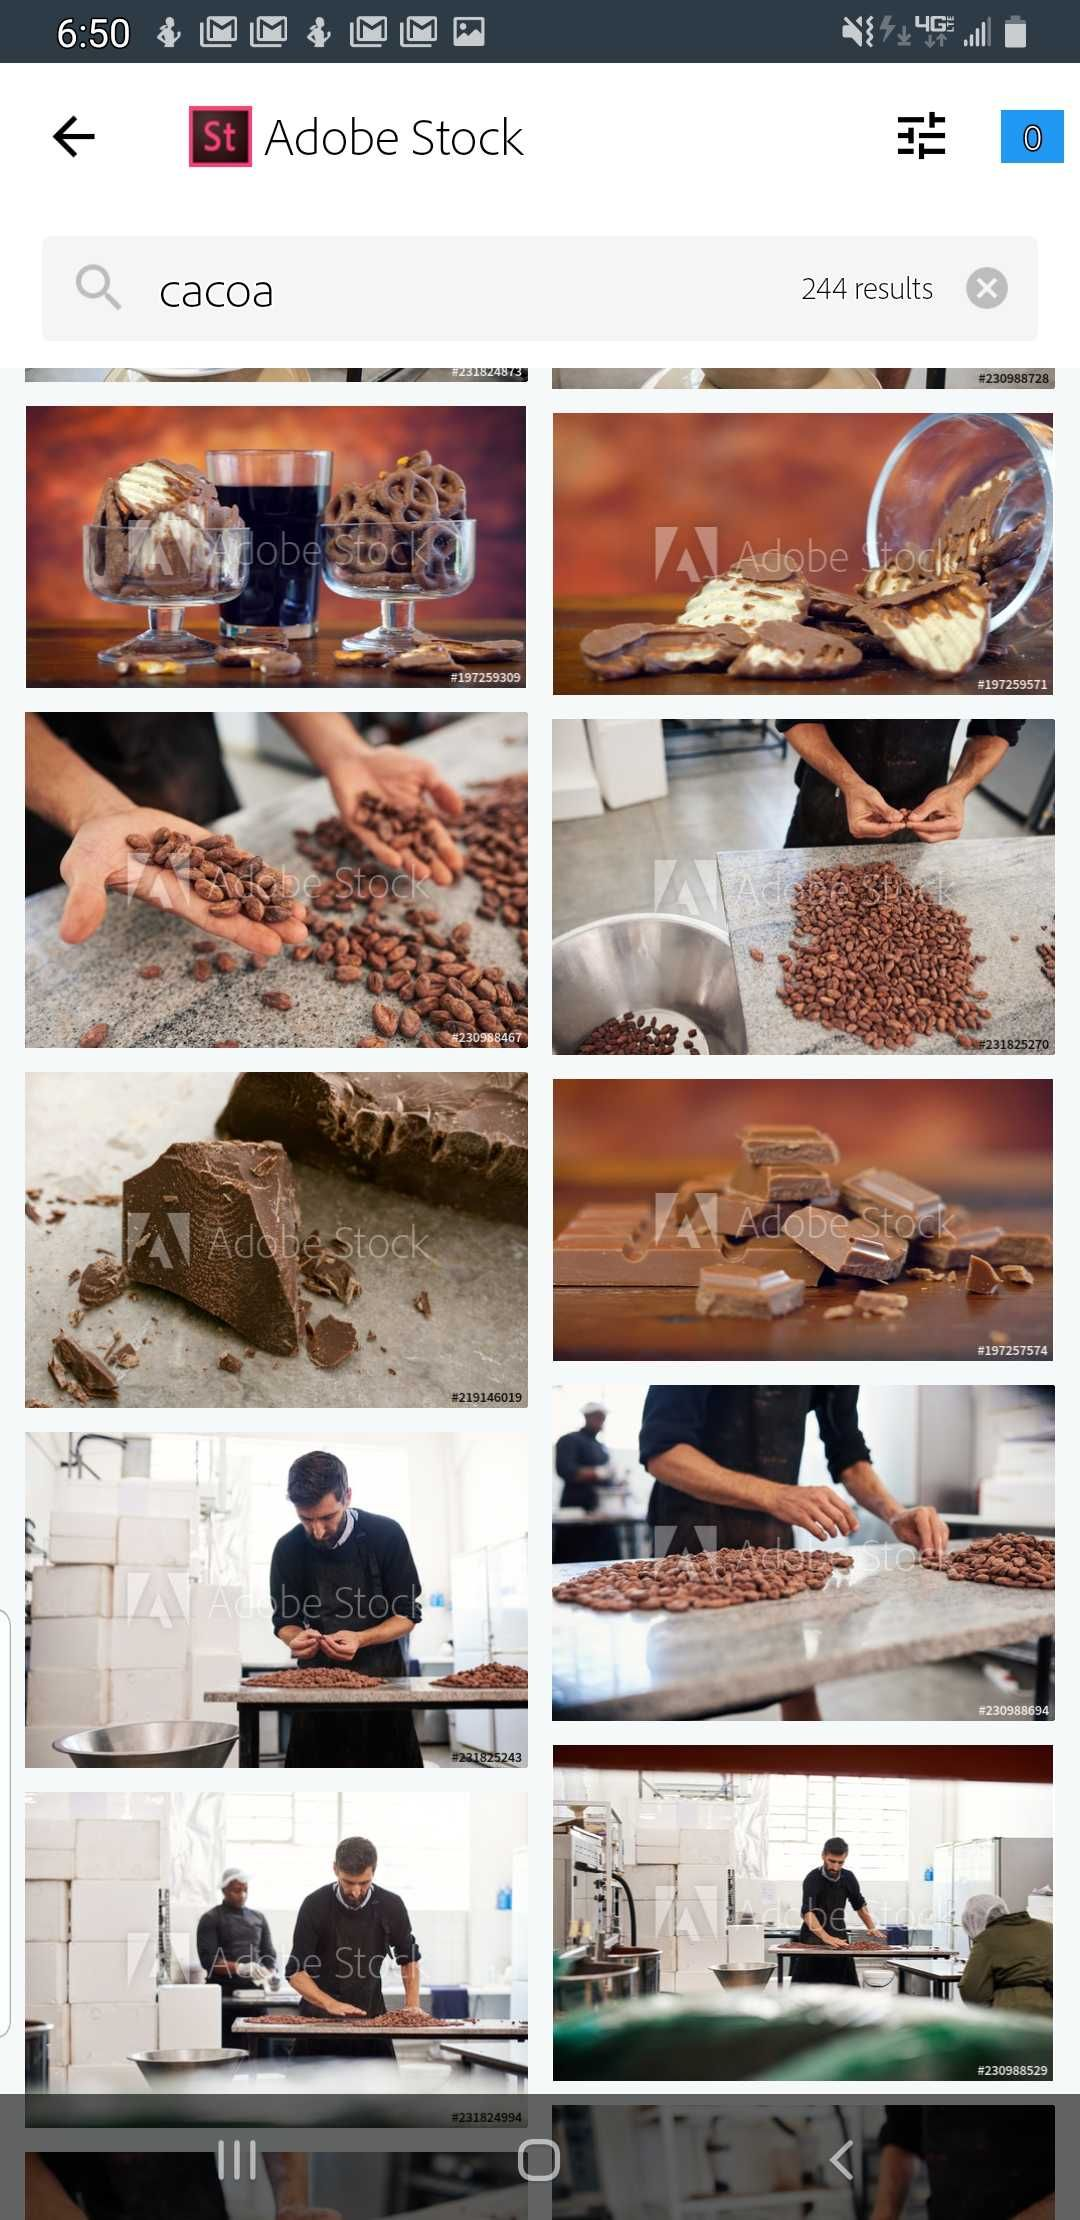 We start with the best raw organic cacao beans sourced from farmers in Peru. We slow grind the beans until they form a smooth silky chocolate base and then add organic coconut sugar and superfood ingredients that vary per bar. We have the goal of making the best tasting, healthiest chocolate on the market - We LOVE it! Love to hear what you think? #chocolate #organic #nonGMO #rawcacao #superfood #coconutsugar #lowsugar #artisan #cocoa #glutenfree #veganchocolate #vegan #plantbased